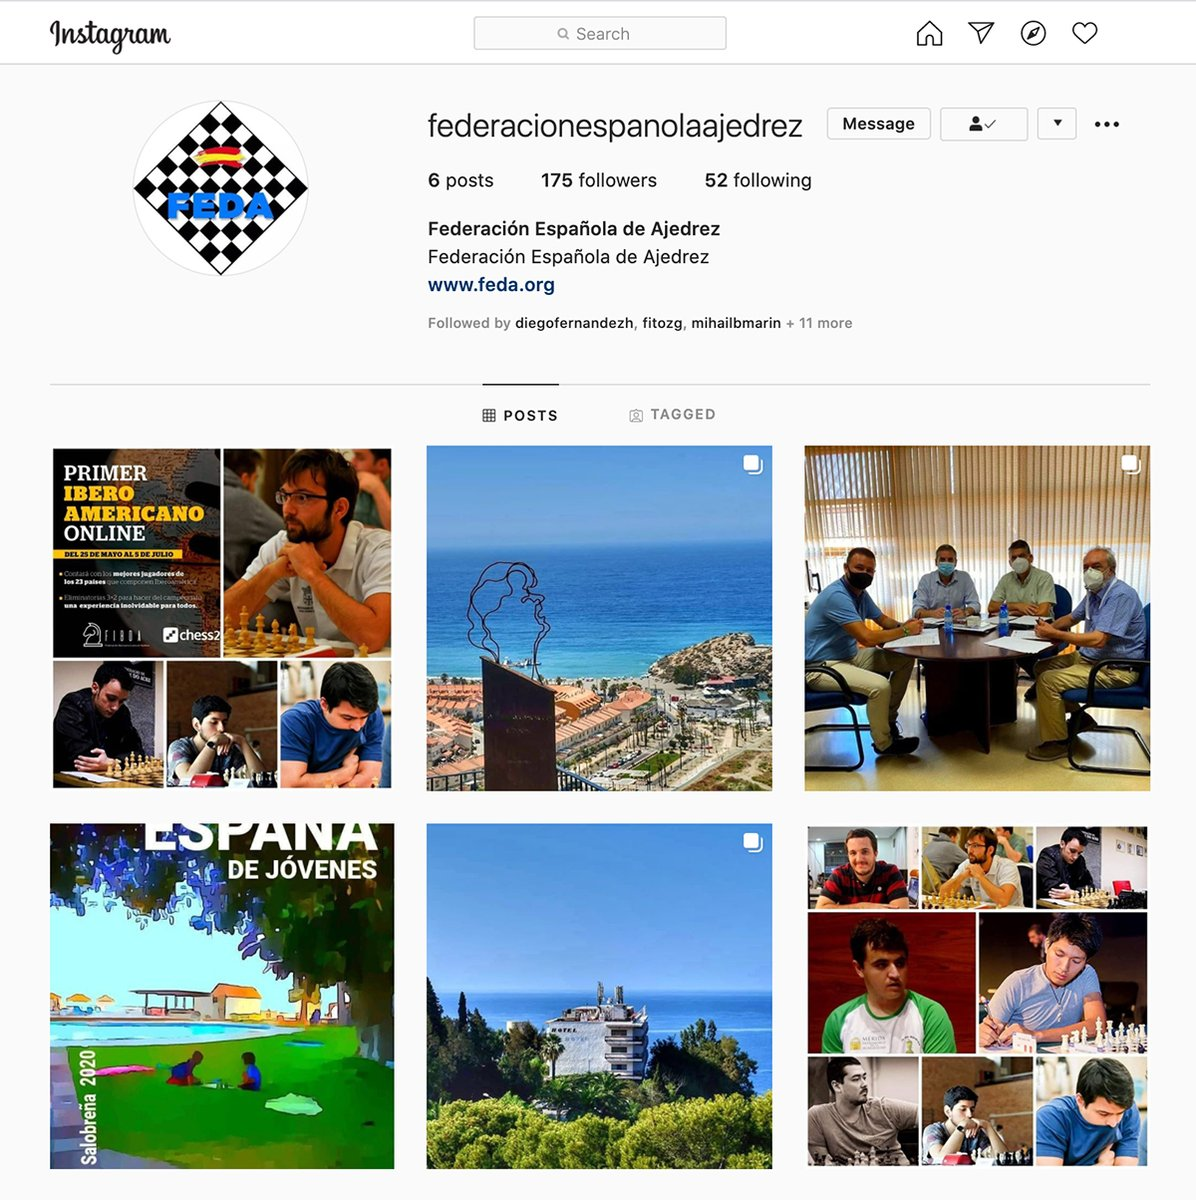 test Twitter Media - The Spanish Chess Federation has launched a new Instagram account: https://t.co/GR25jj5U43 https://t.co/YAKSpKCZ6R